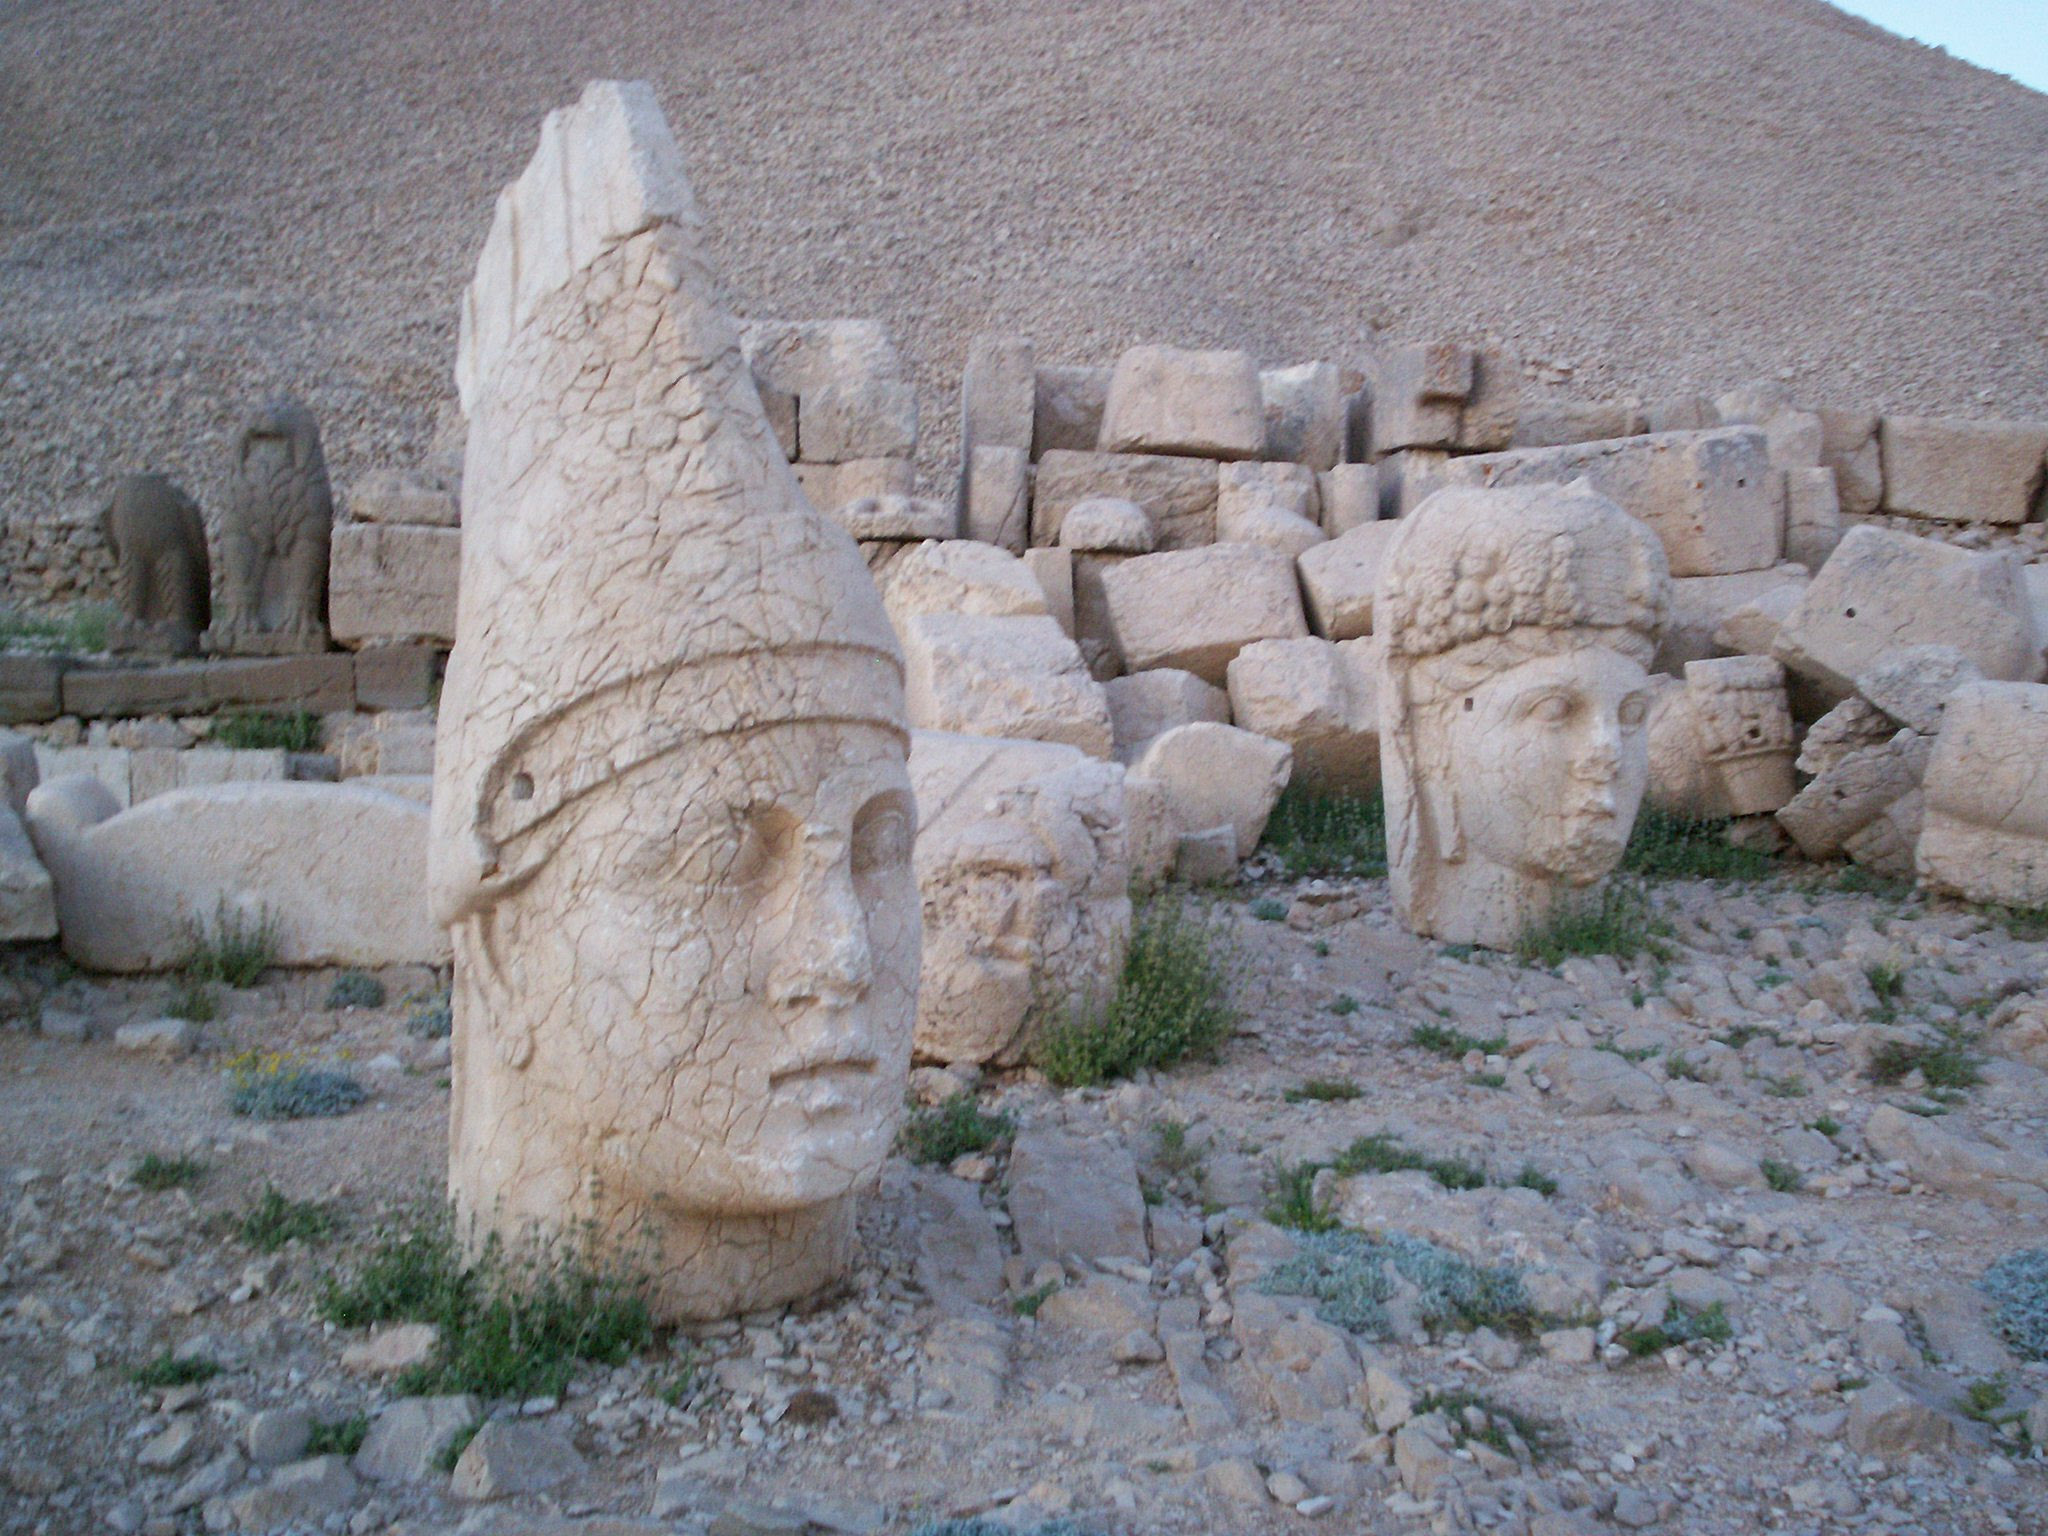 http://upload.wikimedia.org/wikipedia/commons/b/b9/Nemrut-kahta.JPG